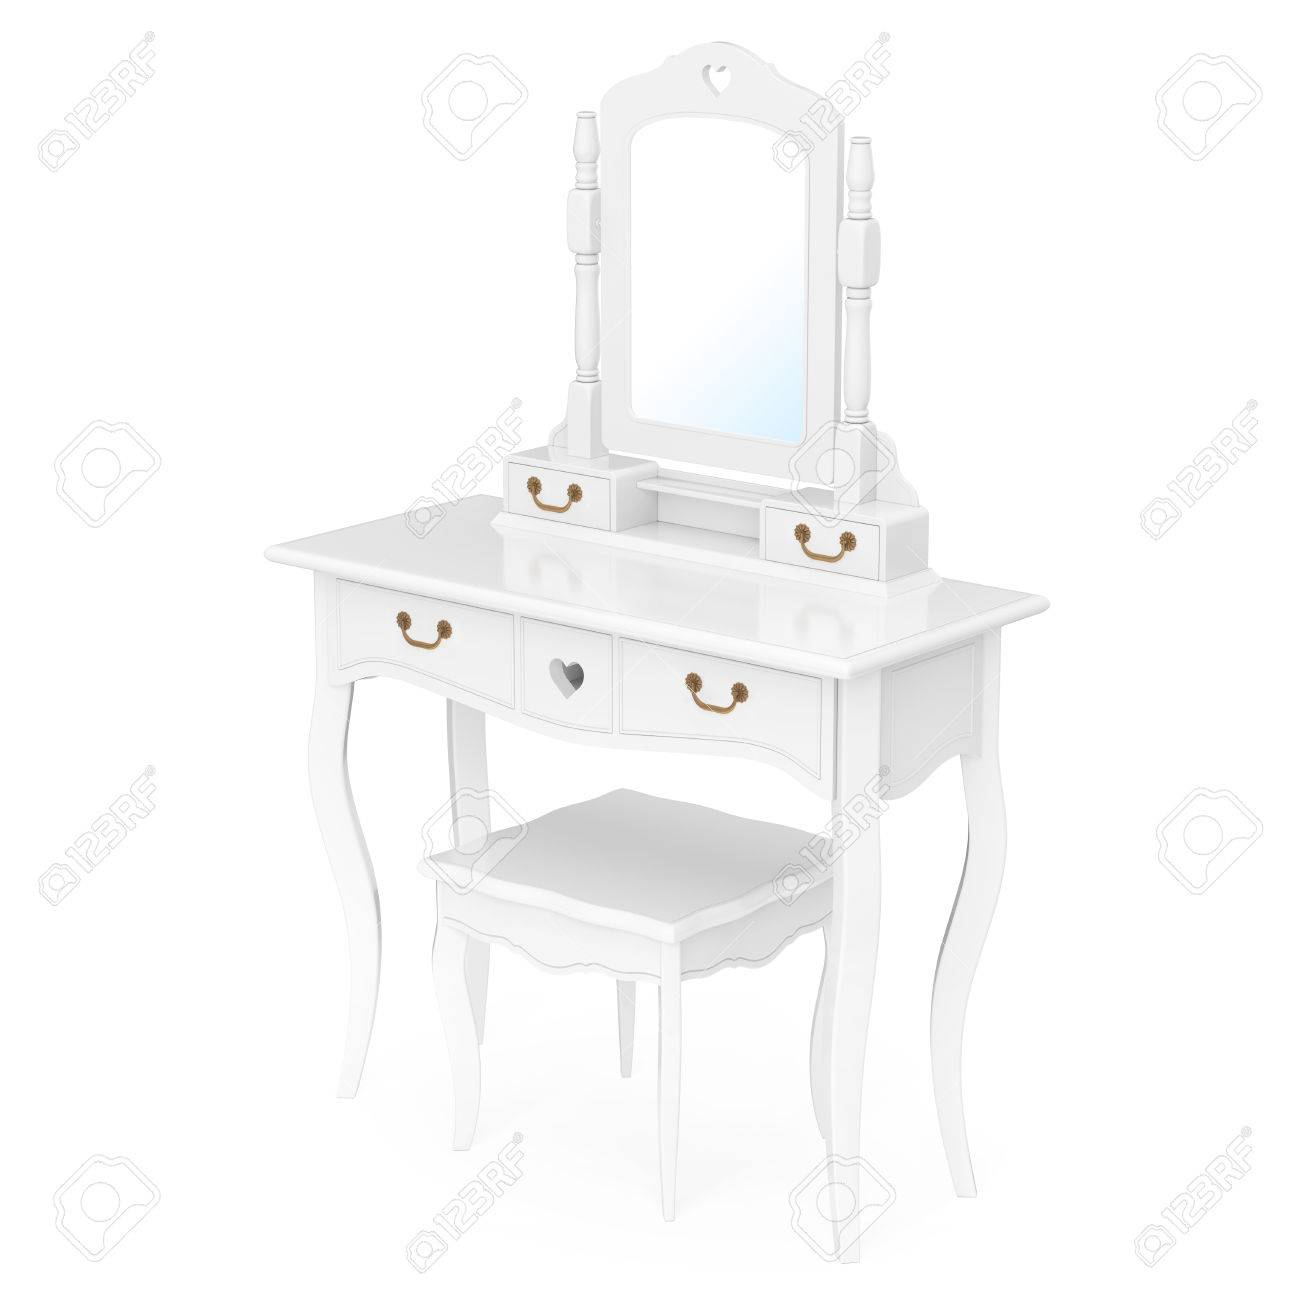 https://previews.123rf.com/images/doomu/doomu1612/doomu161200127/68413690-antique-bedroom-vanity-table-with-stool-and-mirror-on-a-white-background-3d-rendering.jpg